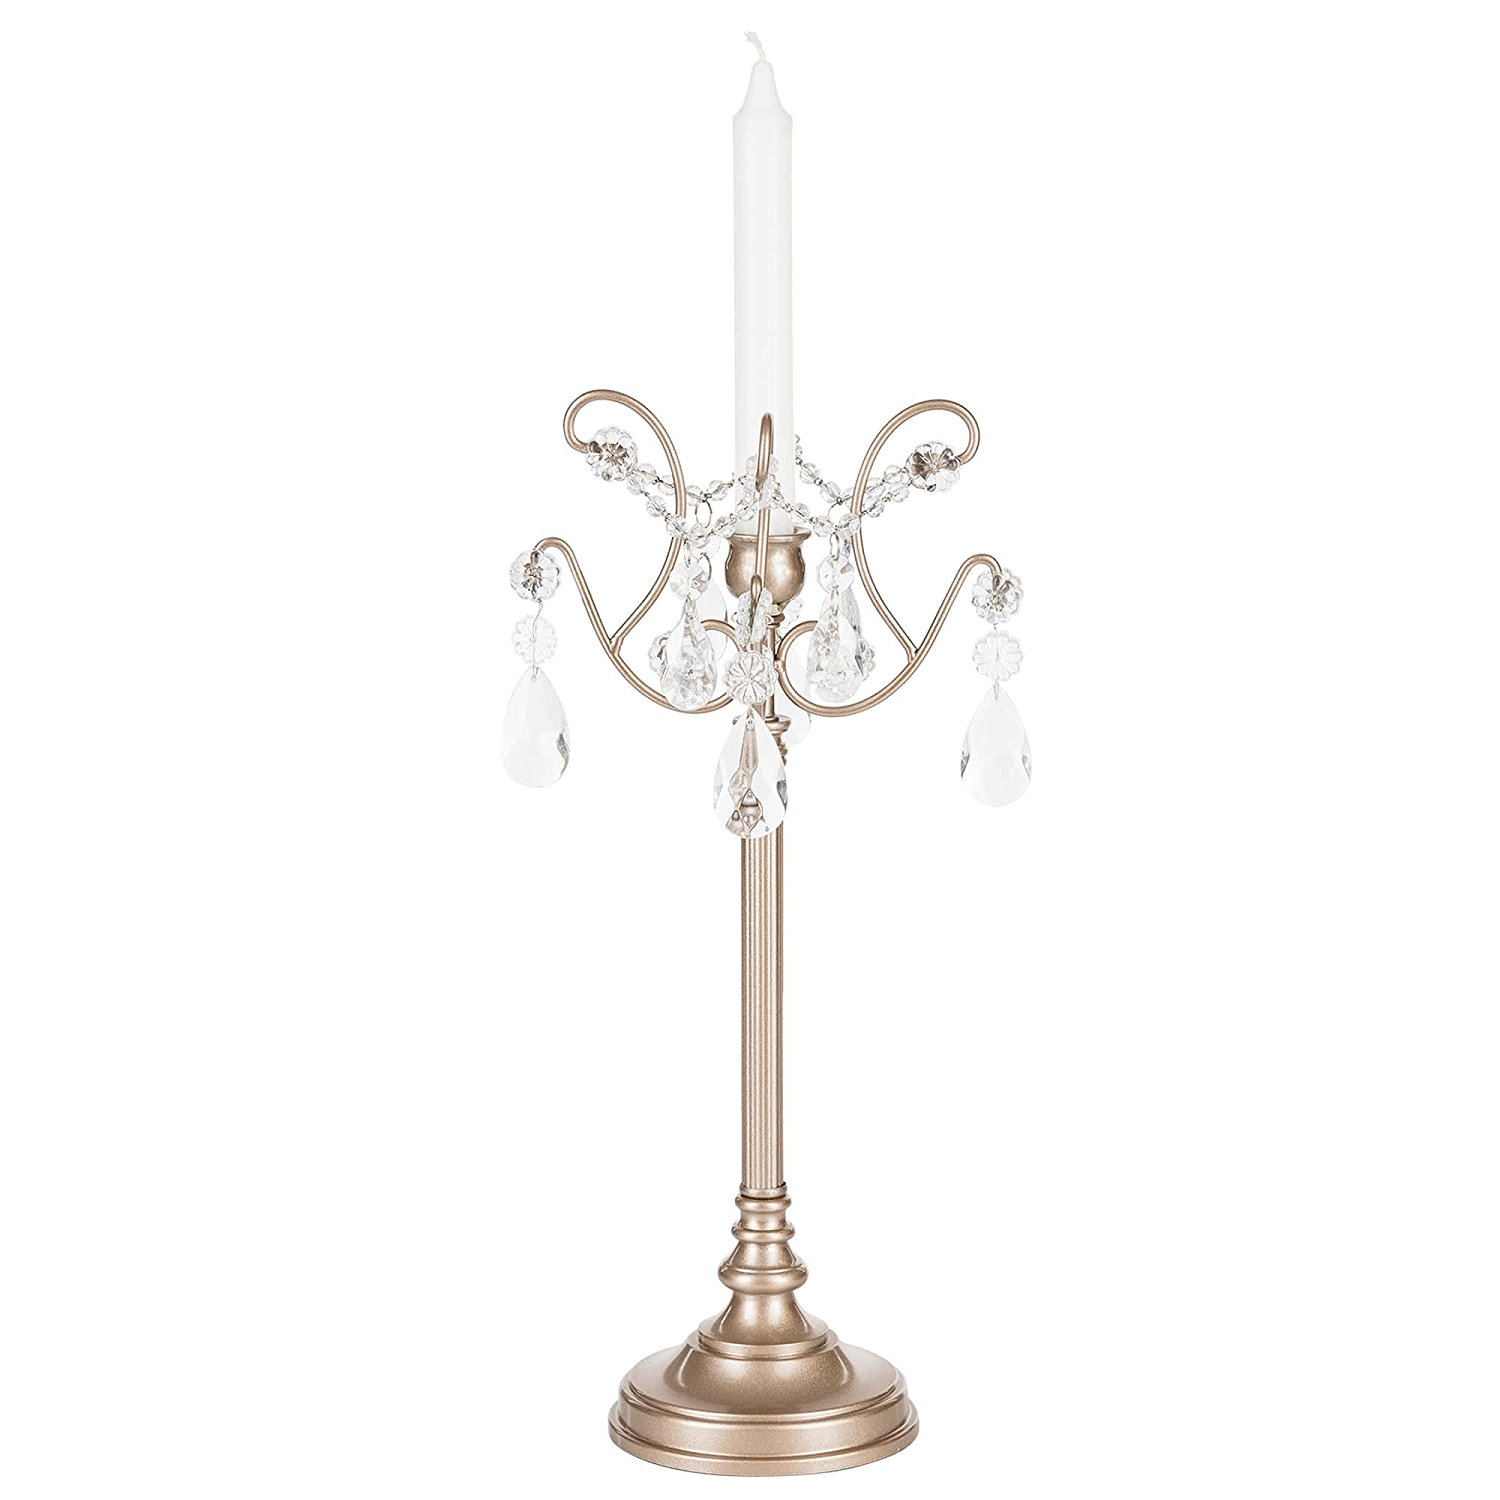 Candelabra with Glass Crystals, Wedding Centerpiece Home Decoration Tea Light and Taper Candle (Silver)